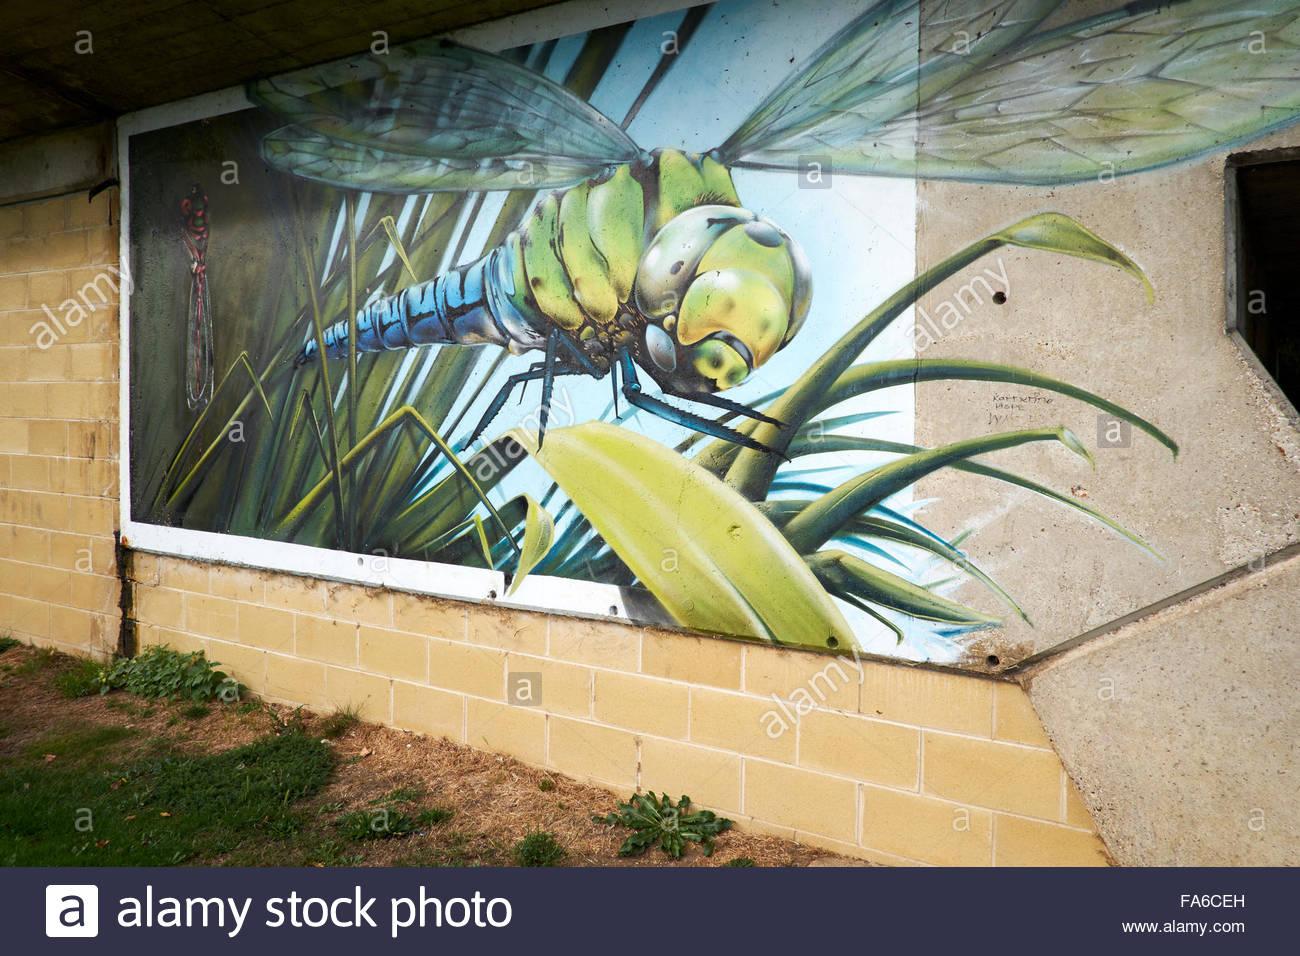 Dragonfly Art Stock Photos & Dragonfly Art Stock Images - Alamy